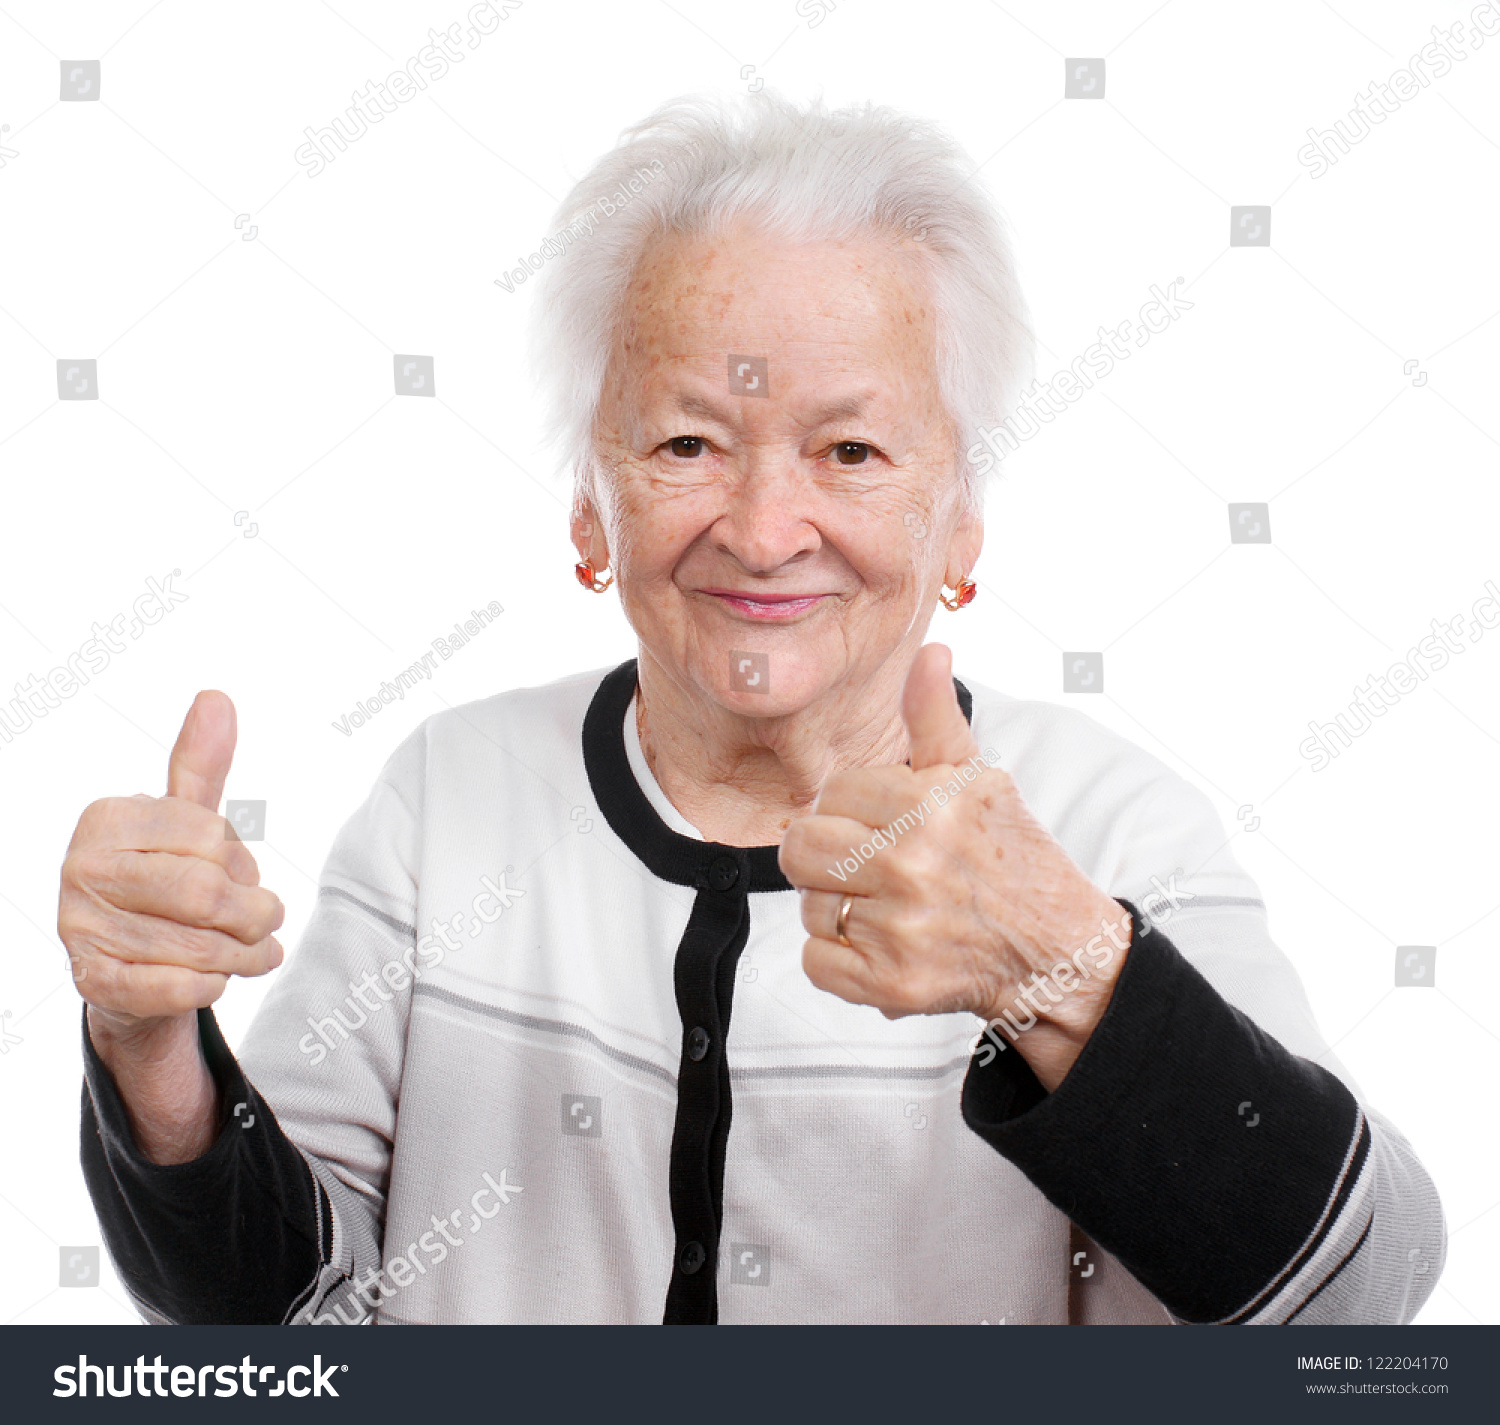 [Image: stock-photo-image-of-successful-old-woma...204170.jpg]